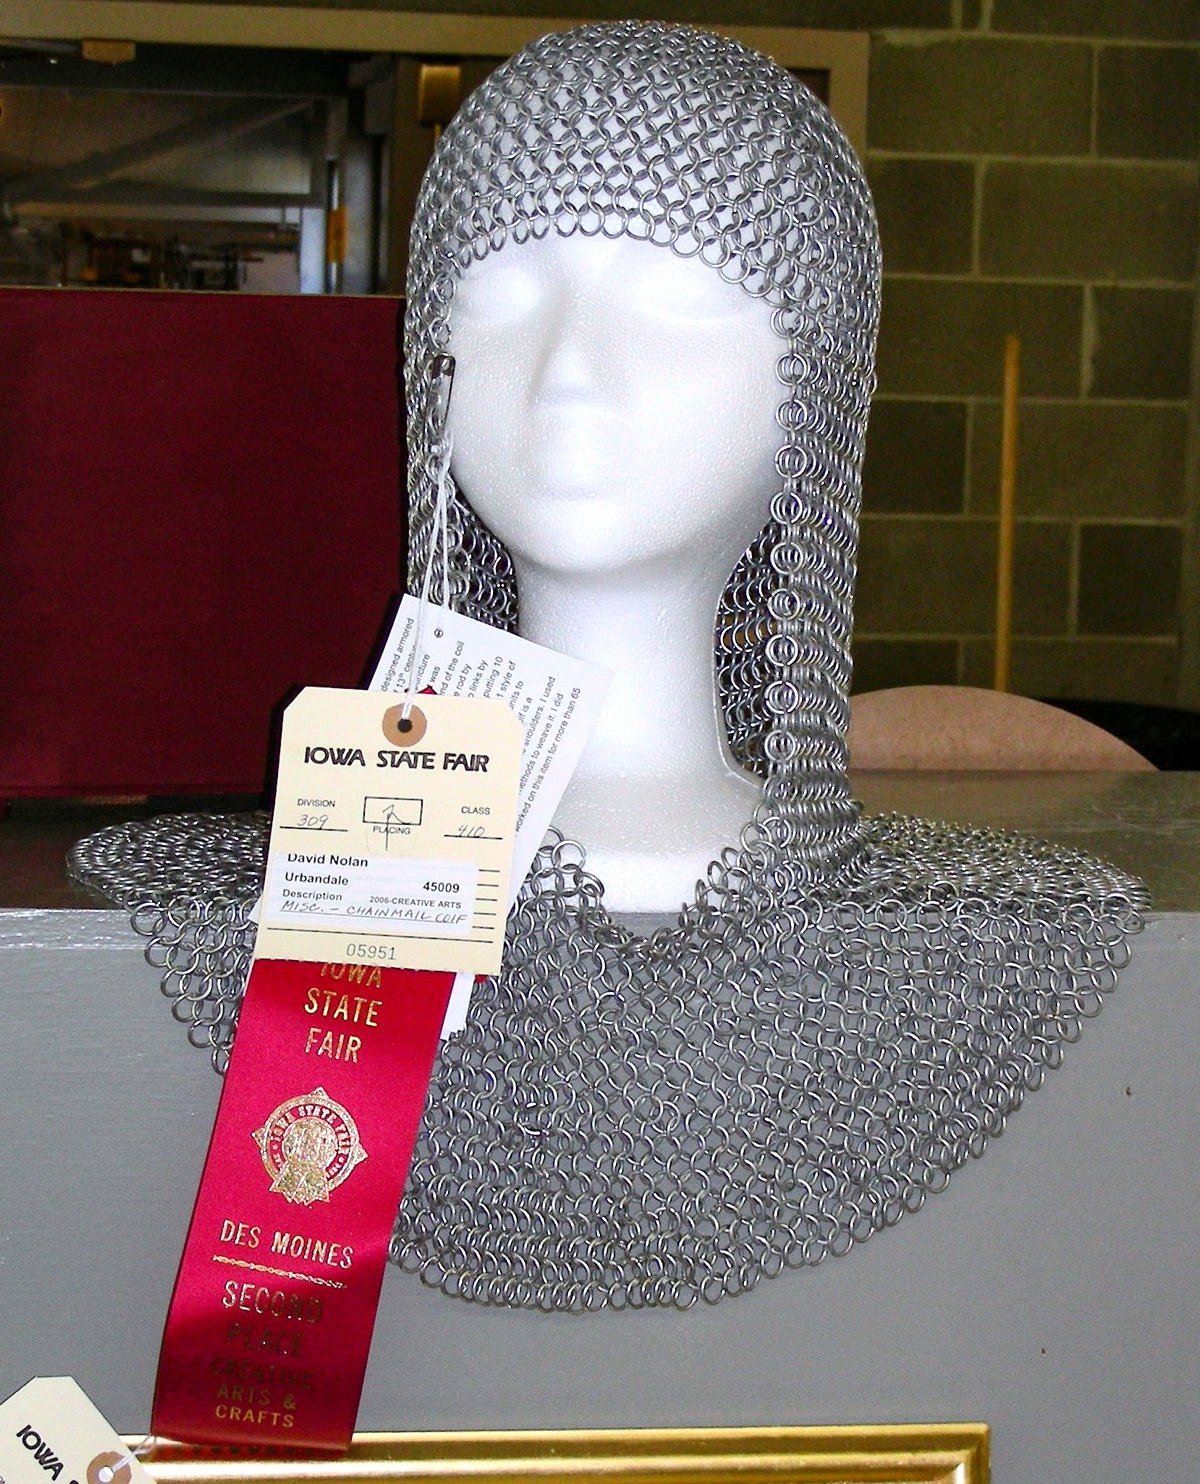 This chainmail coif was entered into competition eight years ago by David, who now is a member of the Society for Creative Anachronism. The links were made entirely by hand and the pattern was designed by David.